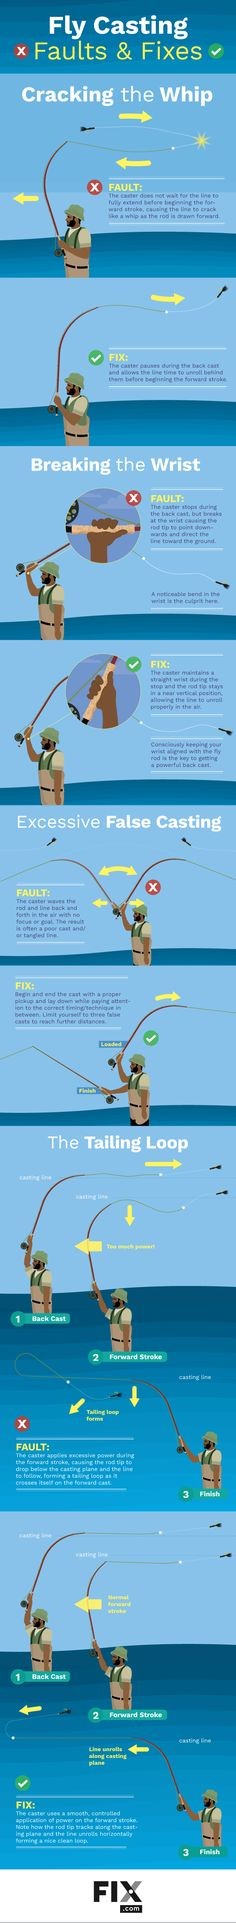 Learn how to fix these common fly fishing casting mistakes and improve your results! #FlyFishing